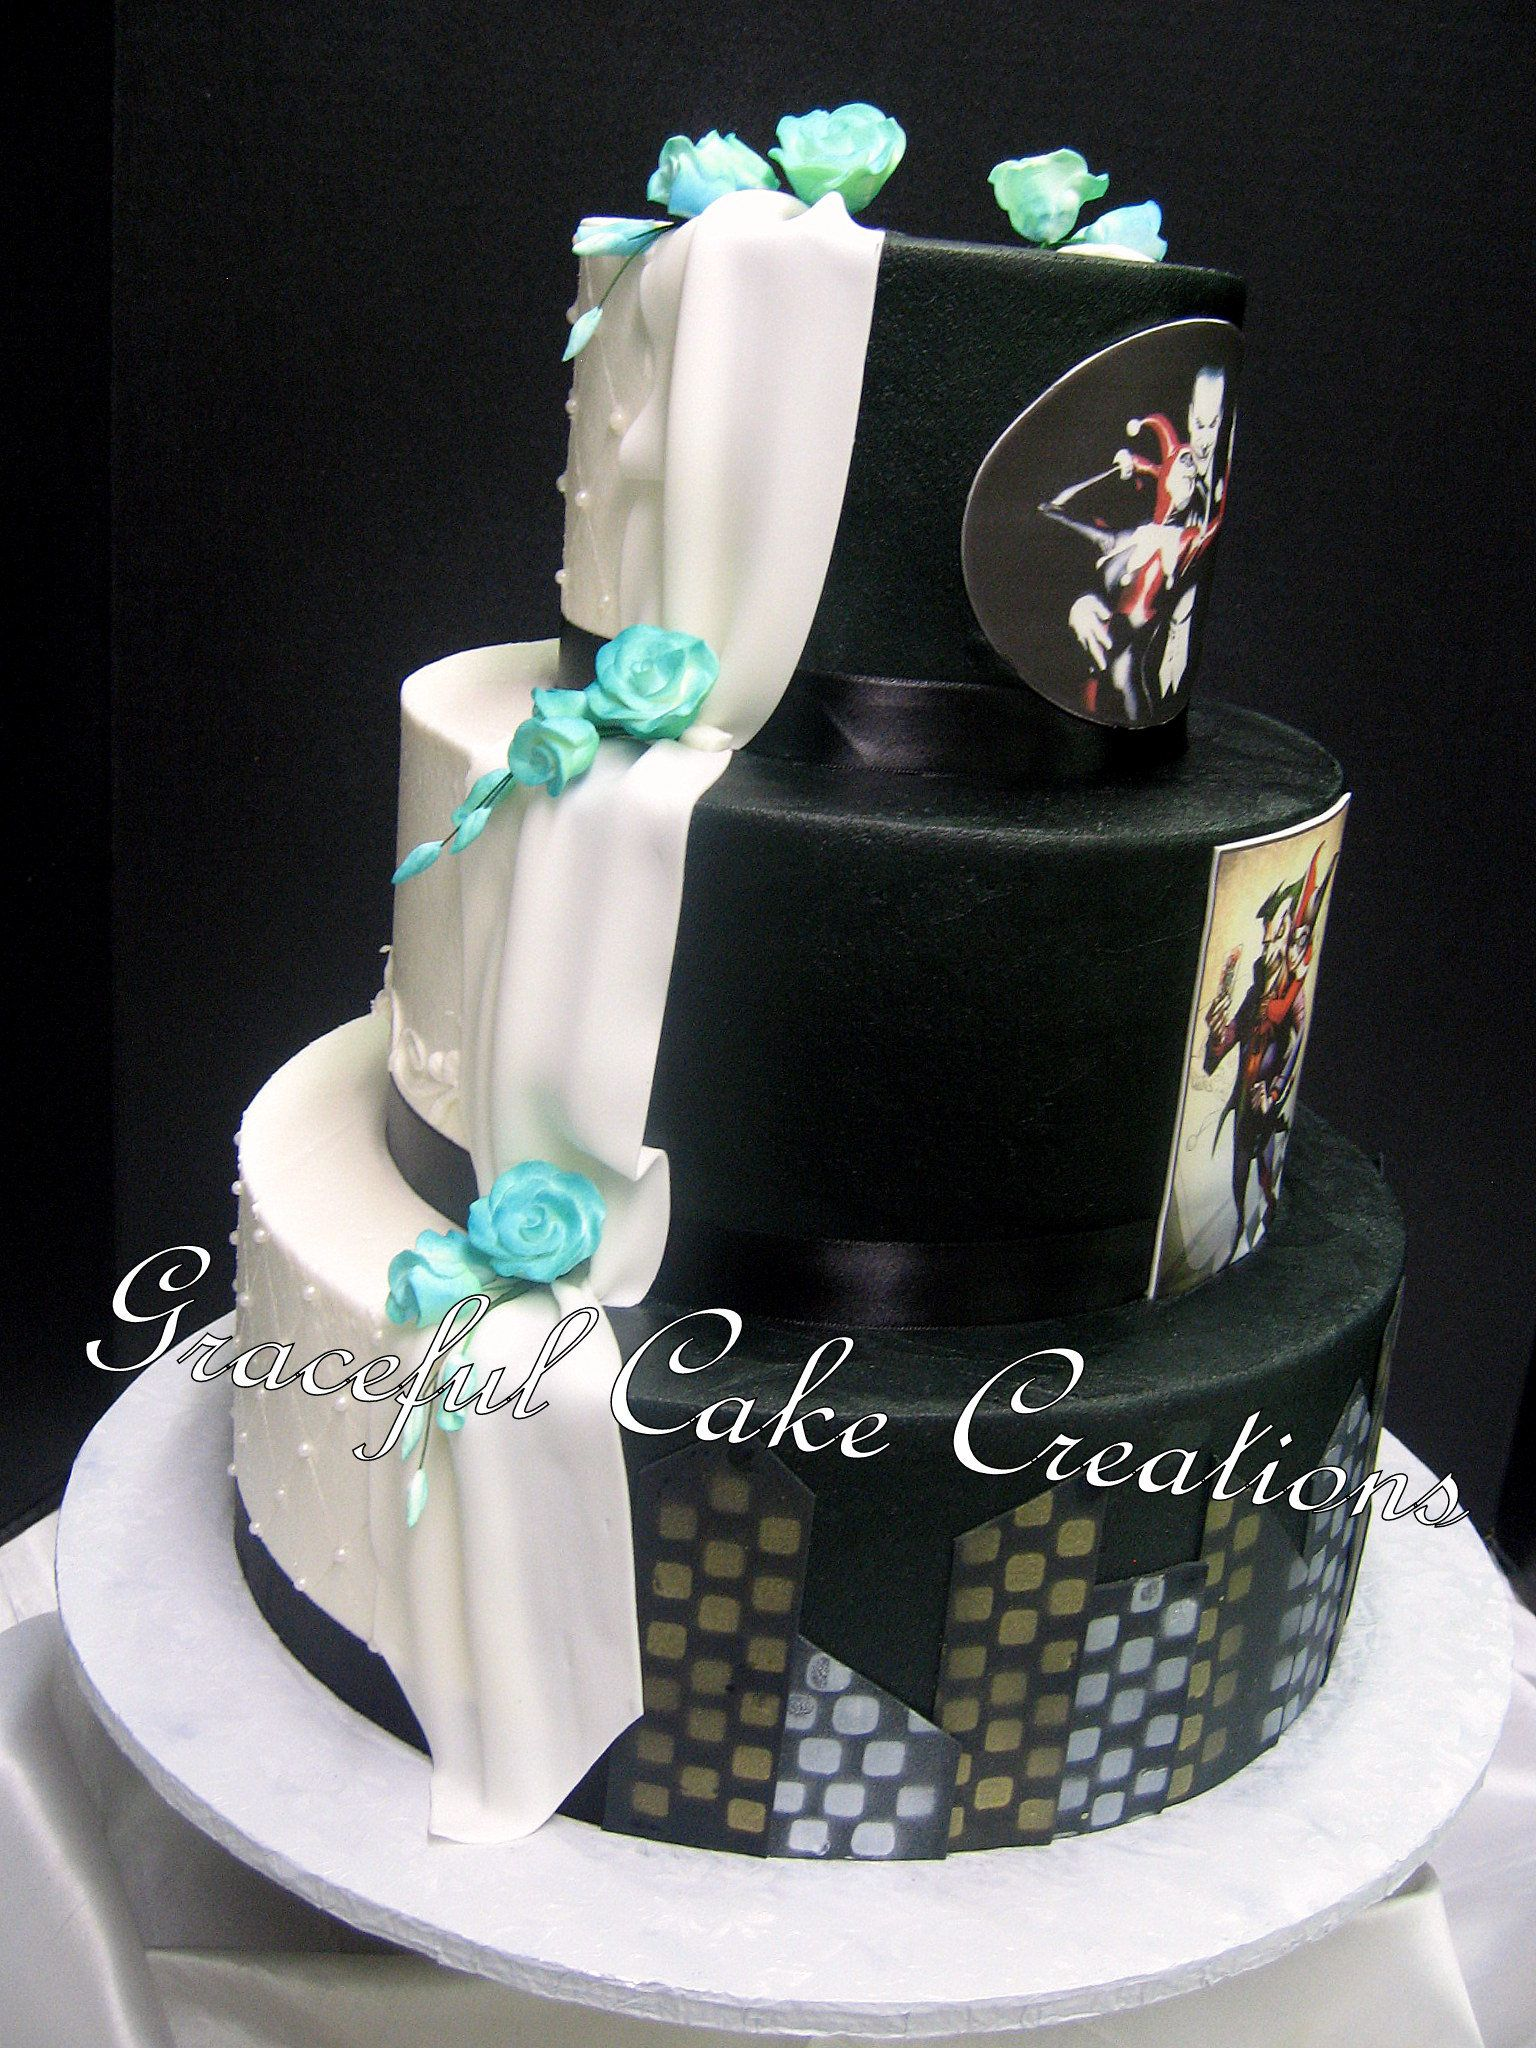 Pin On Wedding Cakes By Graceful Cake Creations